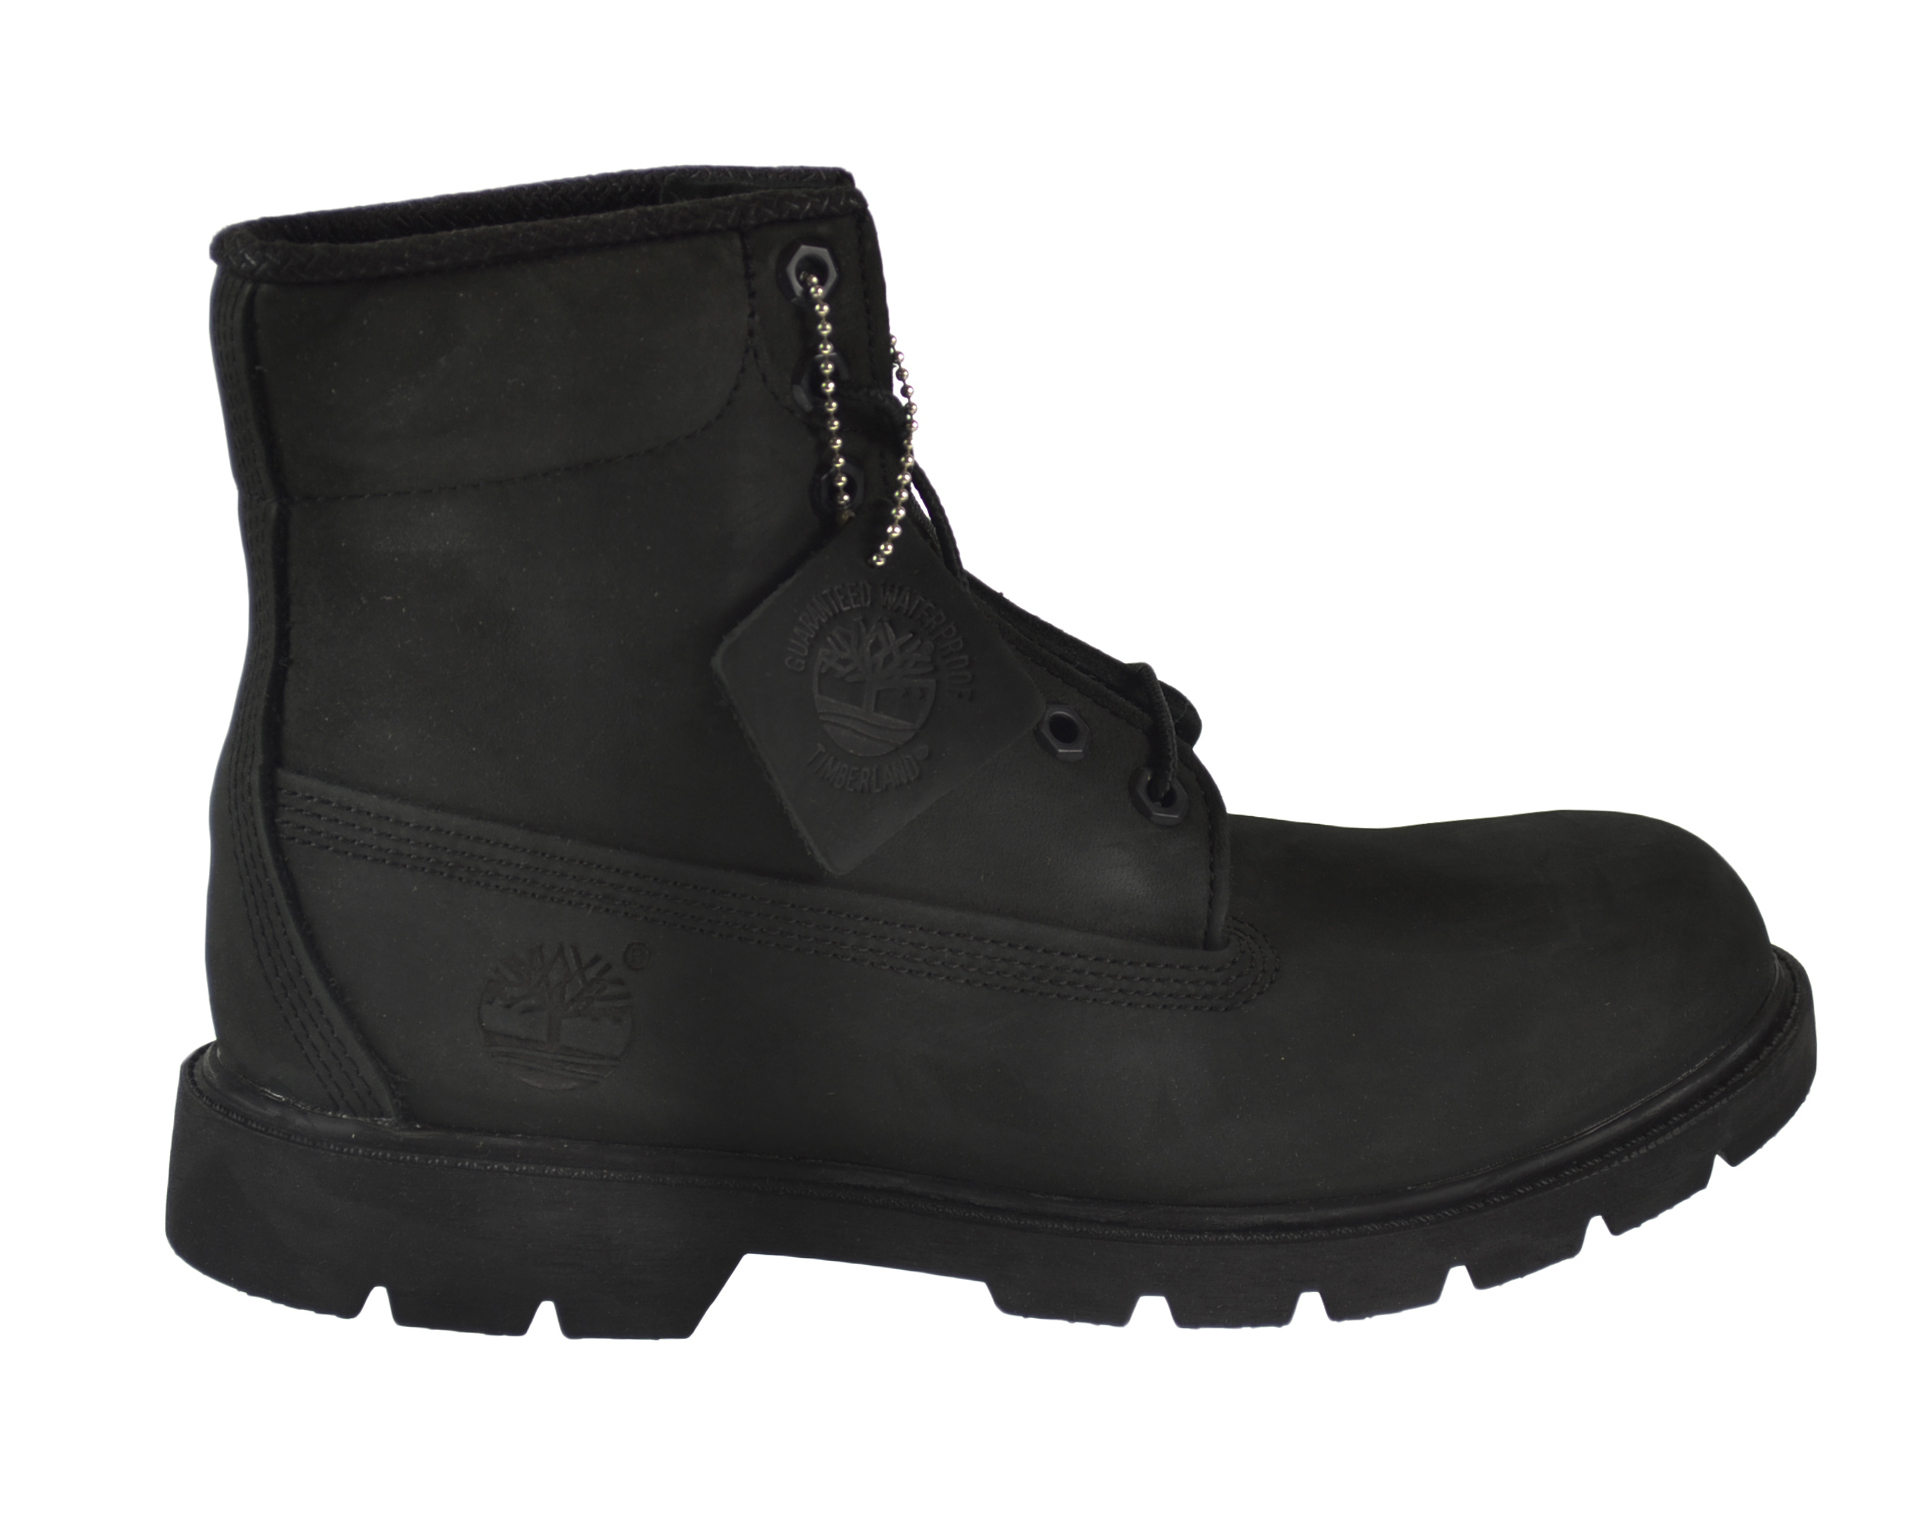 Timberland 6 Inch Basic Men's Boots Black 10042 by Timberland